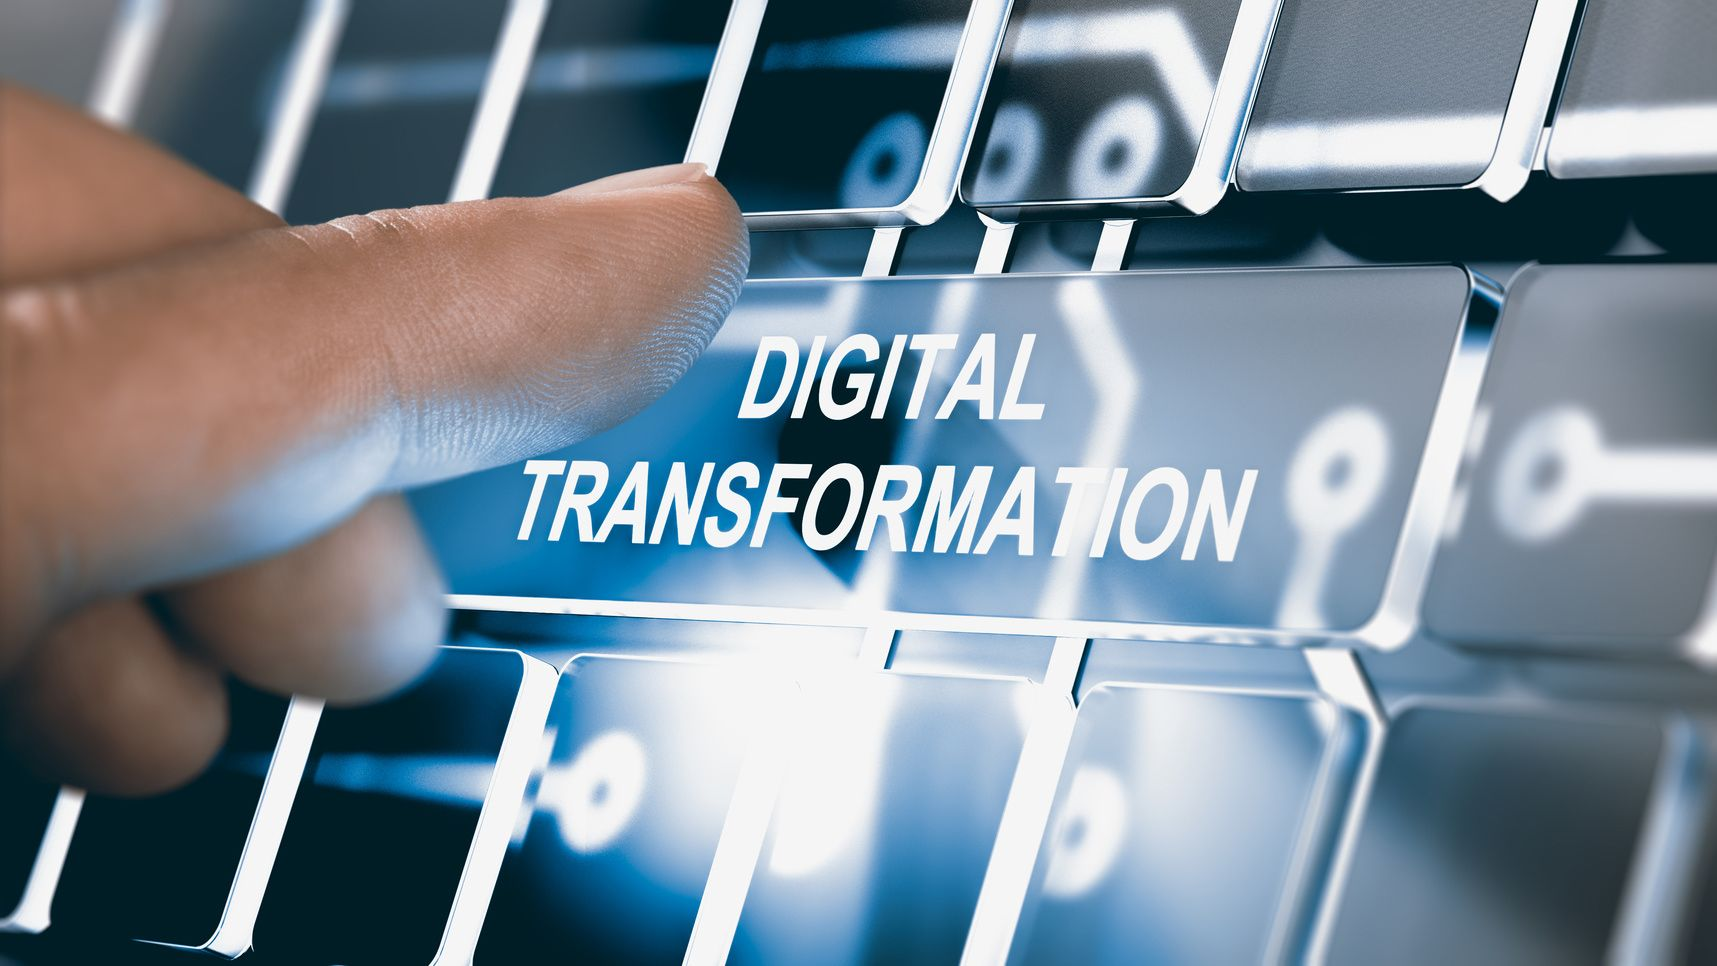 Die digitale Transformation ist das Top-Thema der Berater